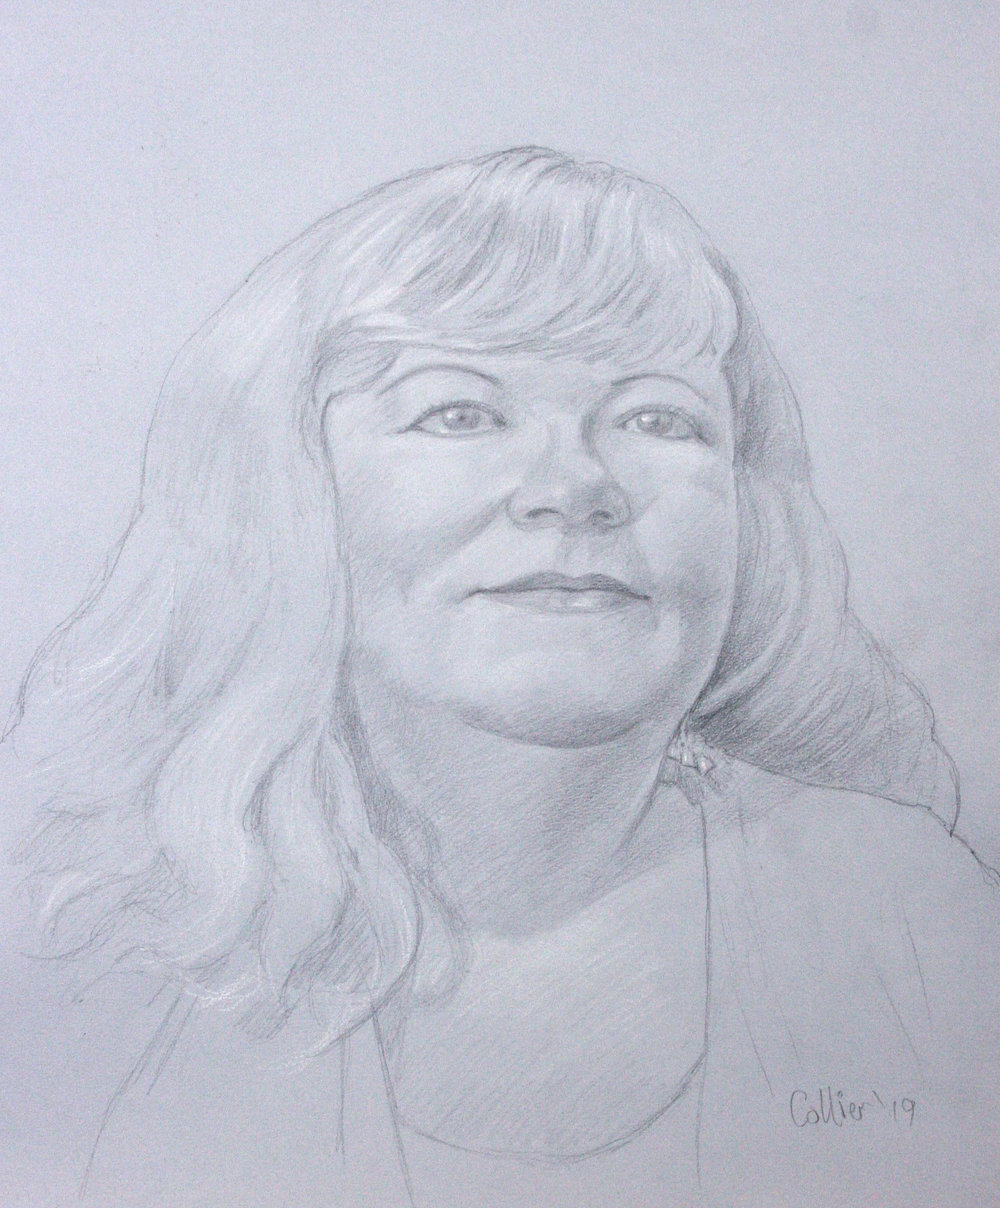 Howard Collier did this drawing.